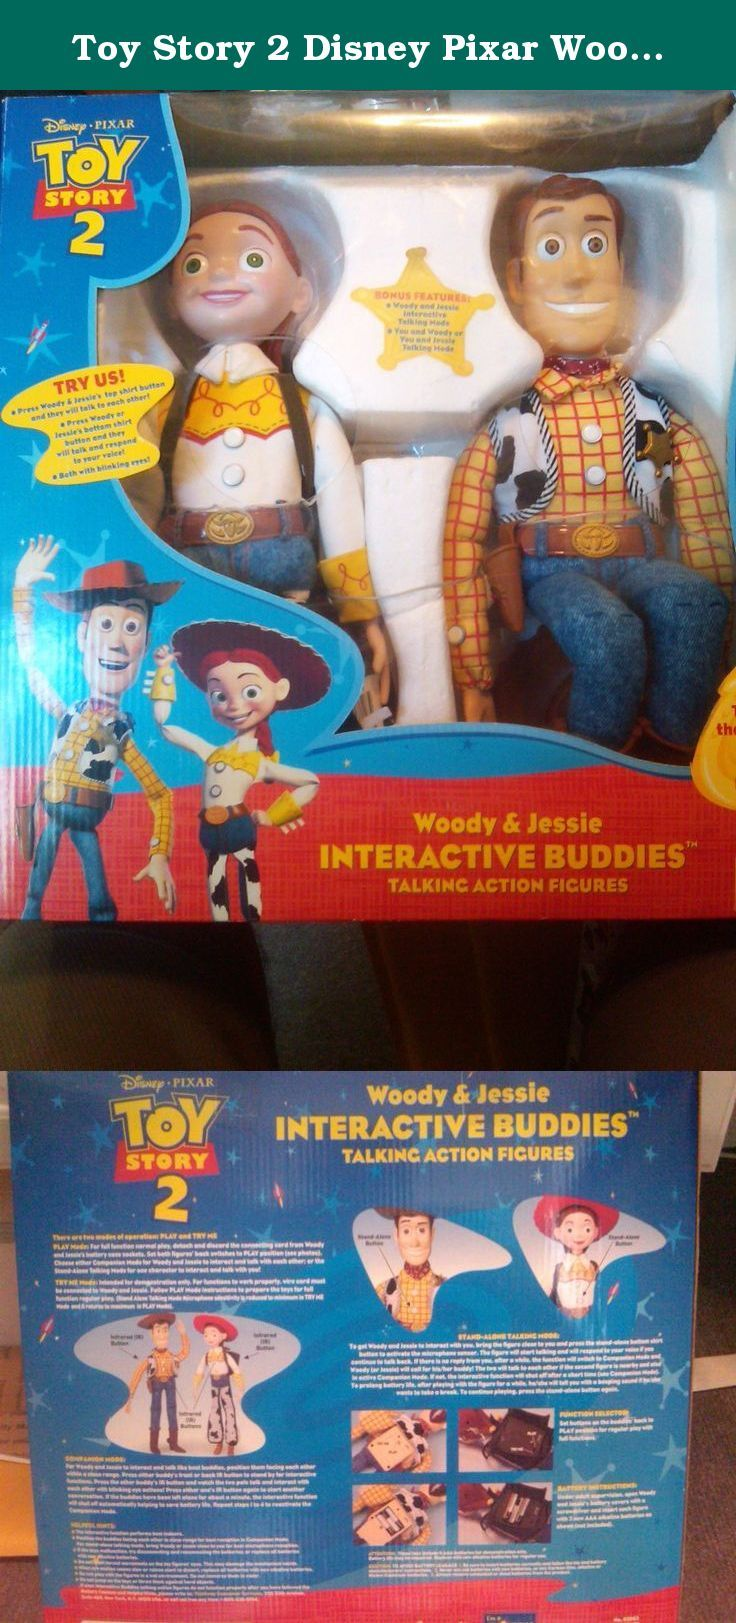 Toy Story 2 Disney Pixar Woody and Jessie Interactive Buddies. Talking Action Figures. Together they say over 100 phrases. Toy Story 2 Woodie & Jesse 18 inch standing interactive Figures.